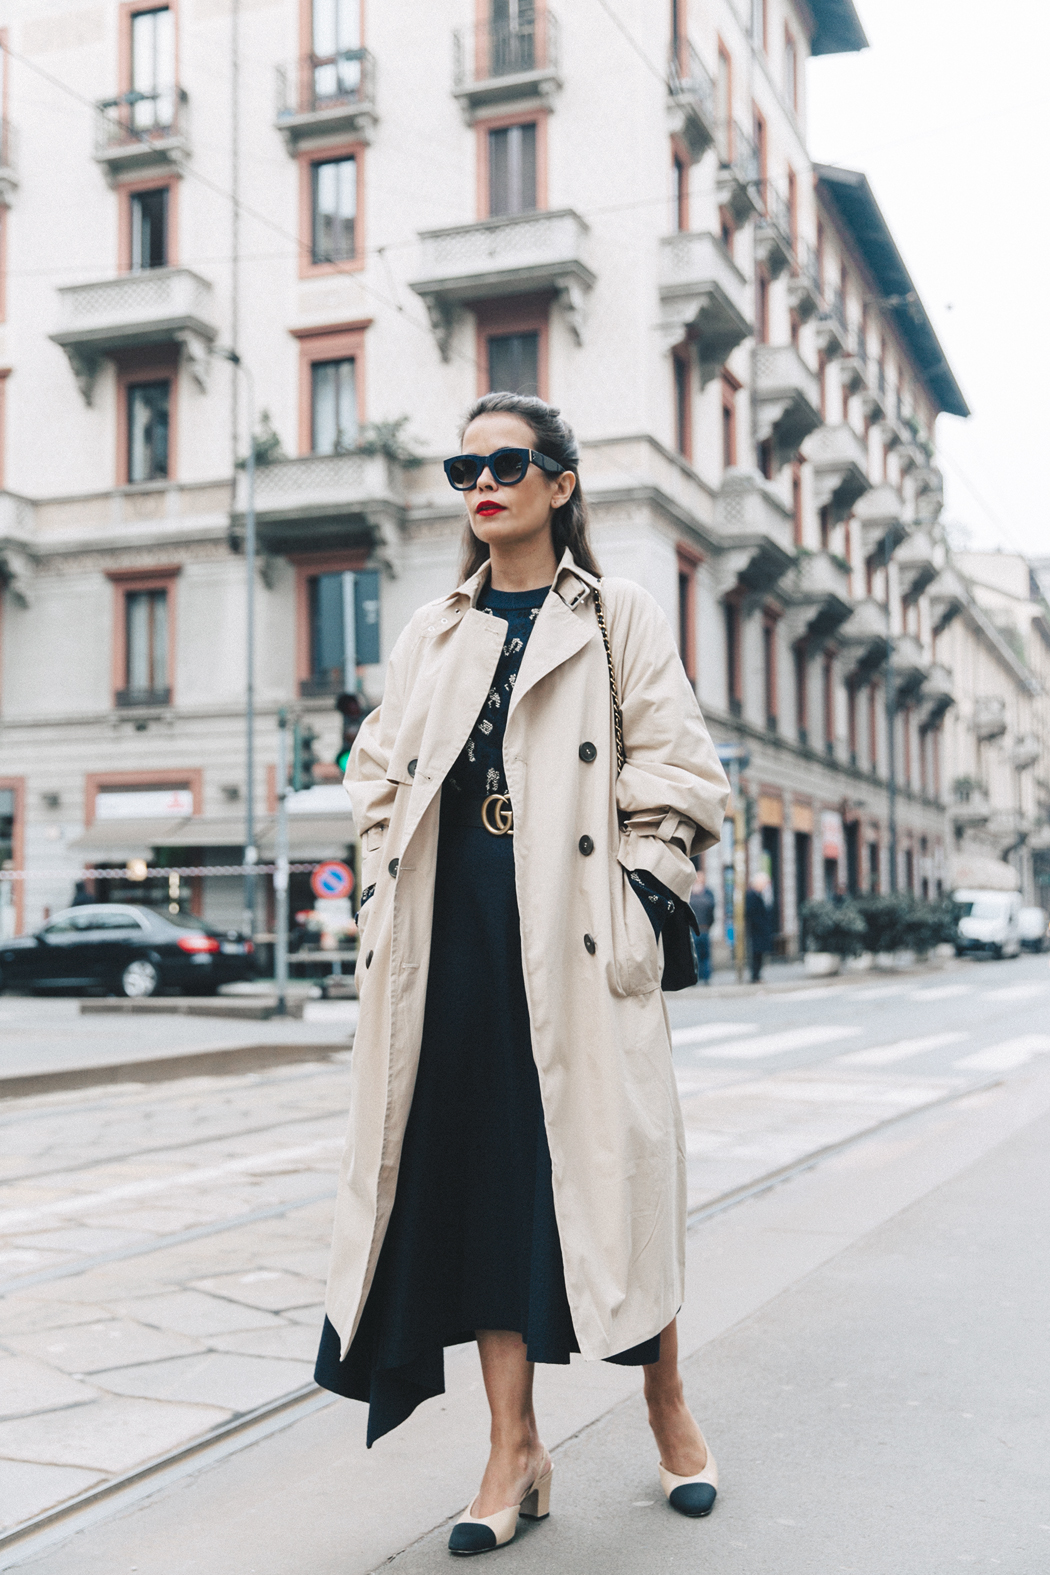 Trench_Edited-Leopard_Sweater-Midi_Skirt-Chanel_Slingback_Shoes-Chanel_Vintage_Bag-Ouftit_Streetstyle-1